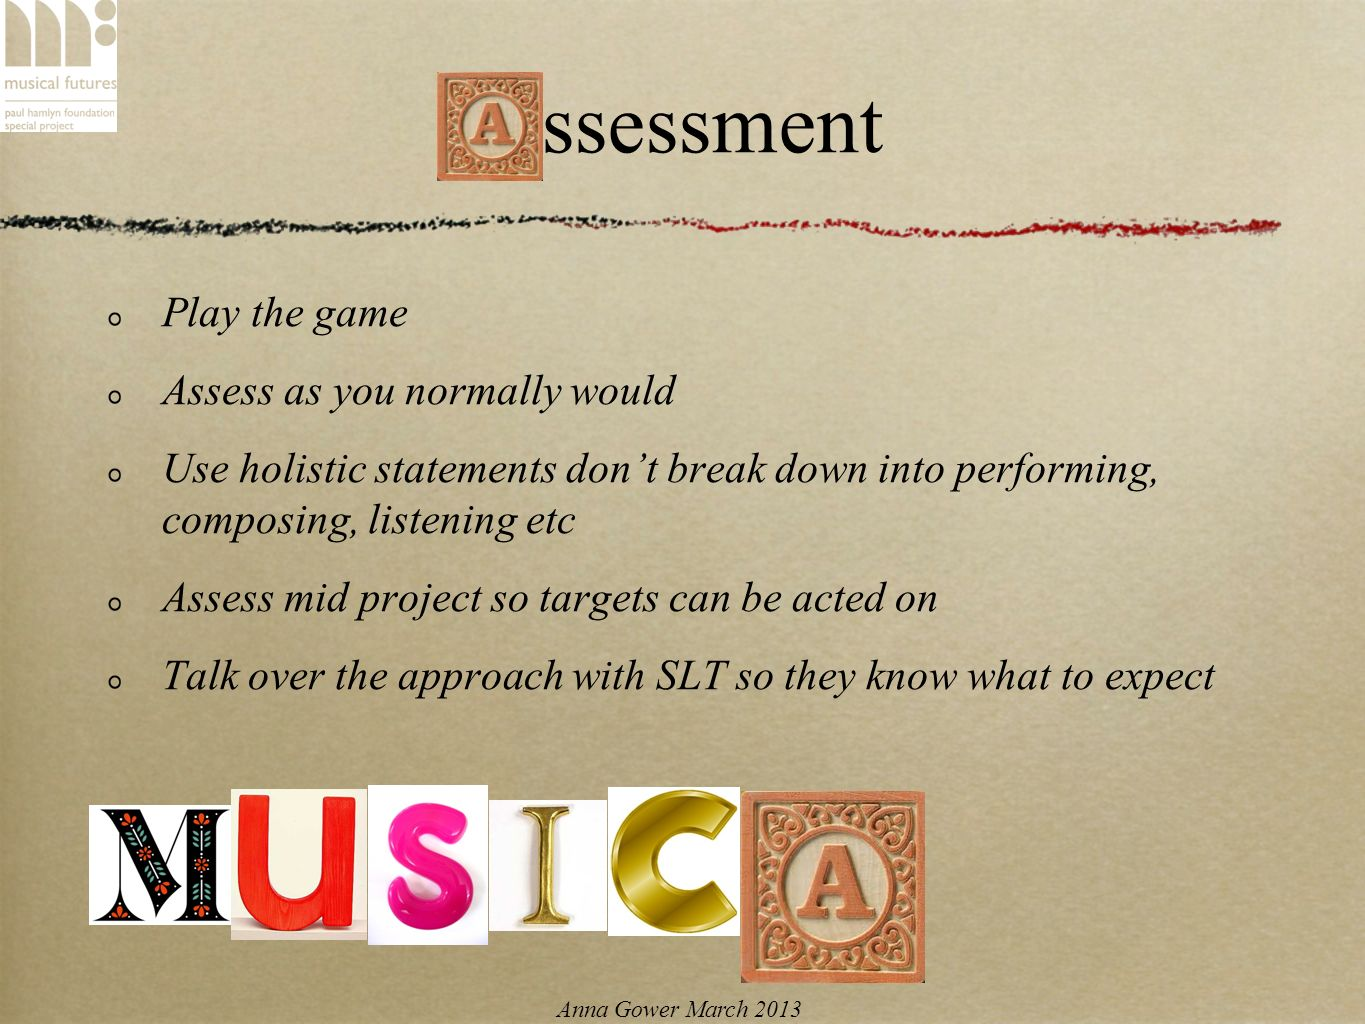 Anna Gower March 2013 Assessment Play the game Assess as you normally would Use holistic statements dont break down into performing, composing, listening etc Assess mid project so targets can be acted on Talk over the approach with SLT so they know what to expect